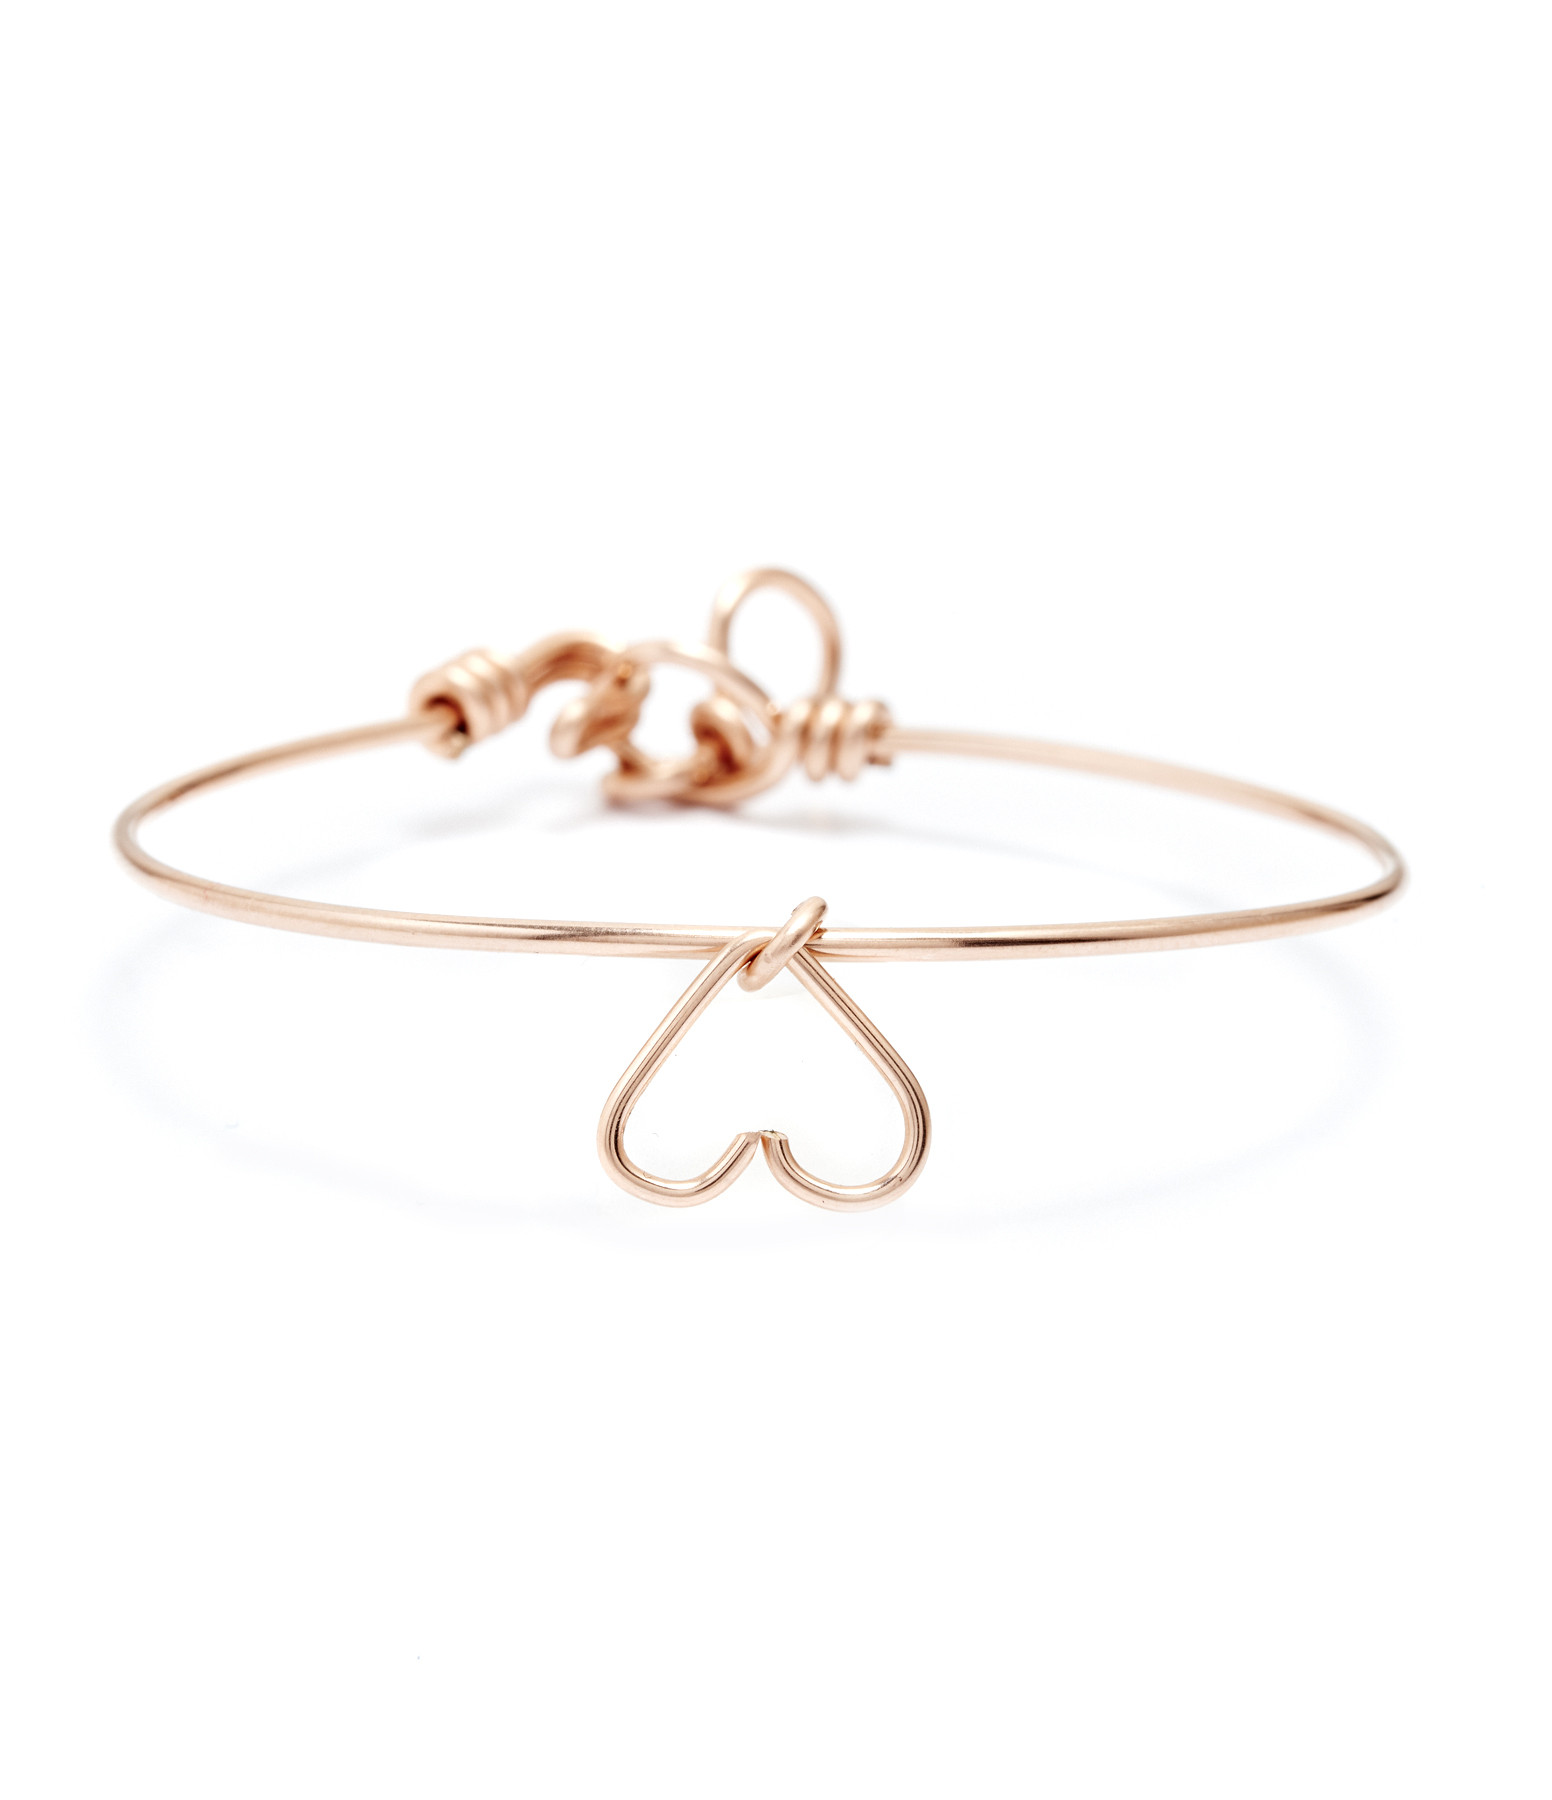 ATELIER PAULIN - Jonc Pampille Charm Coeur Gold Filled Rose